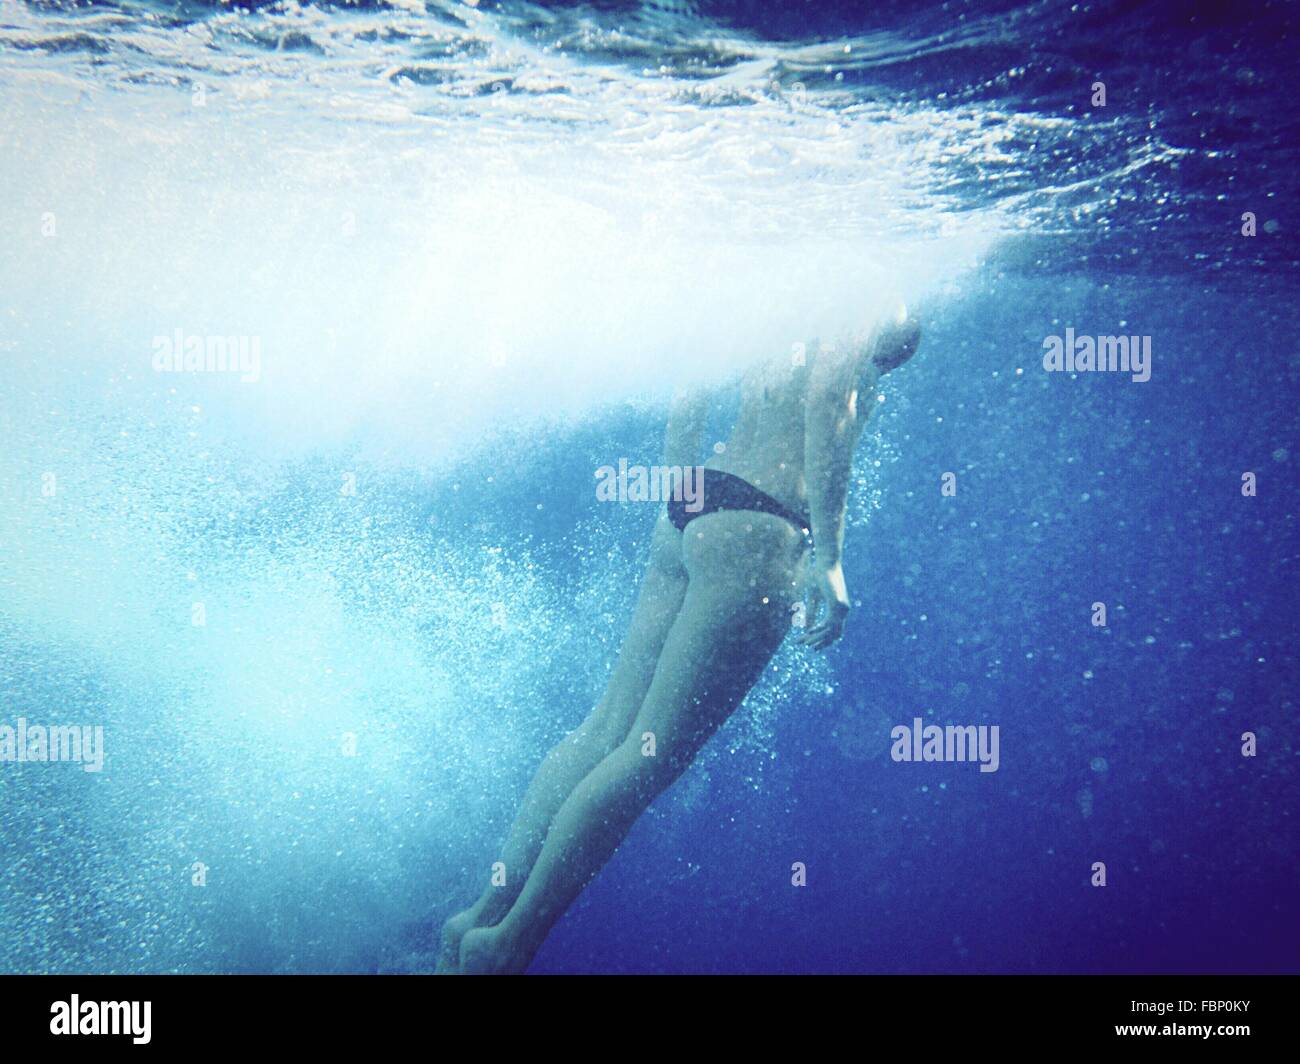 Low Section Of Woman Swimming Underwater - Stock Image